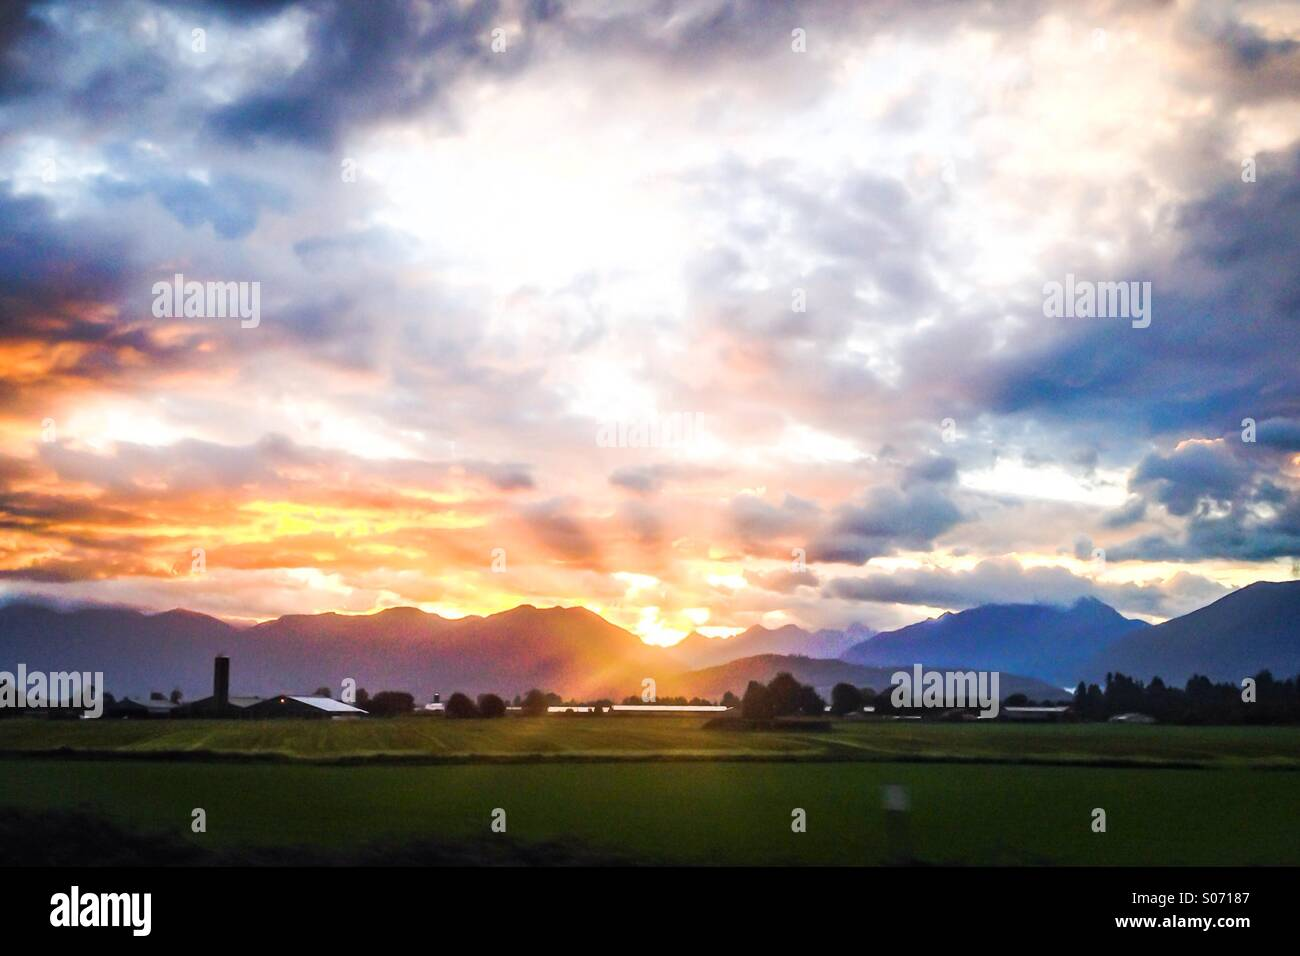 Sun rising amongst the clouds, over the mountains. The green pastures and farm getting the first lights of the day. - Stock Image